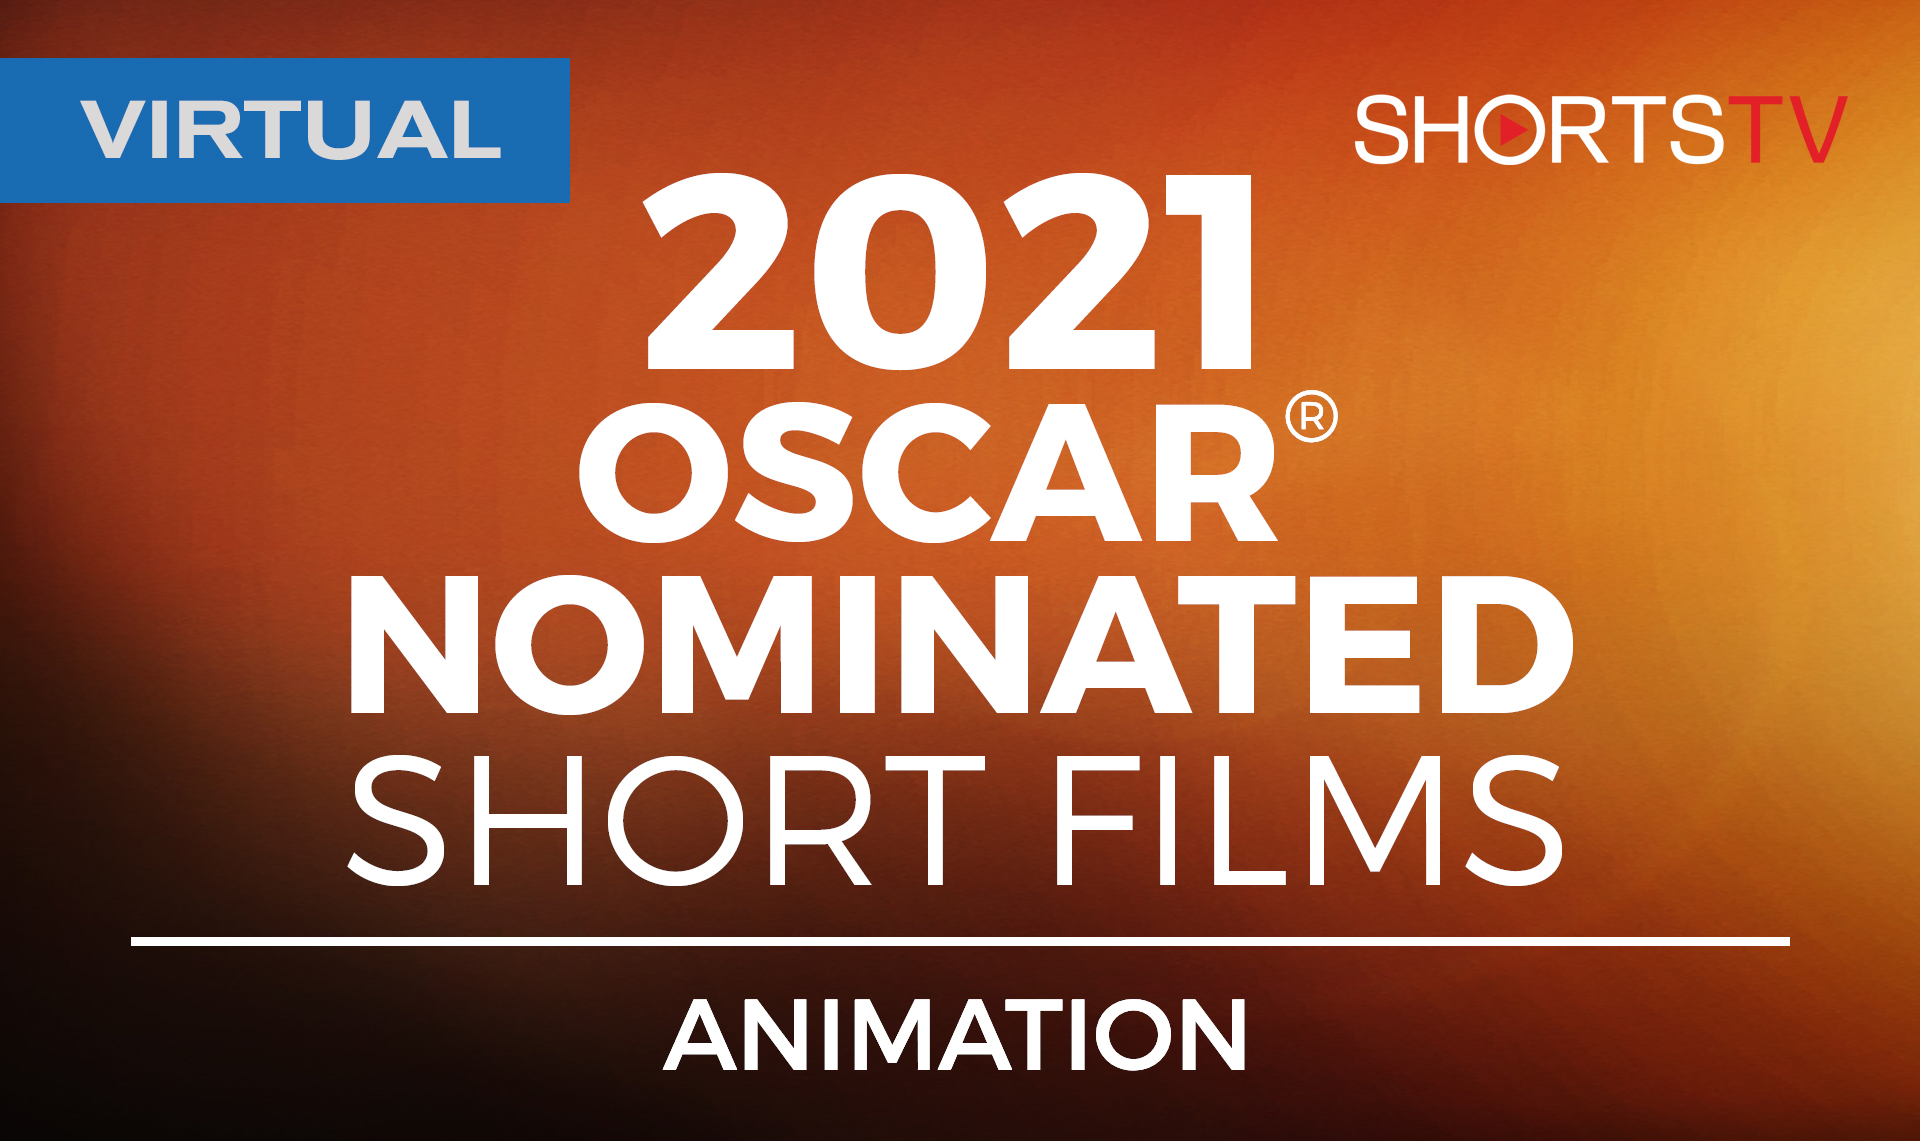 Virtual: 2021 Oscar Nominated Short Films: Animation